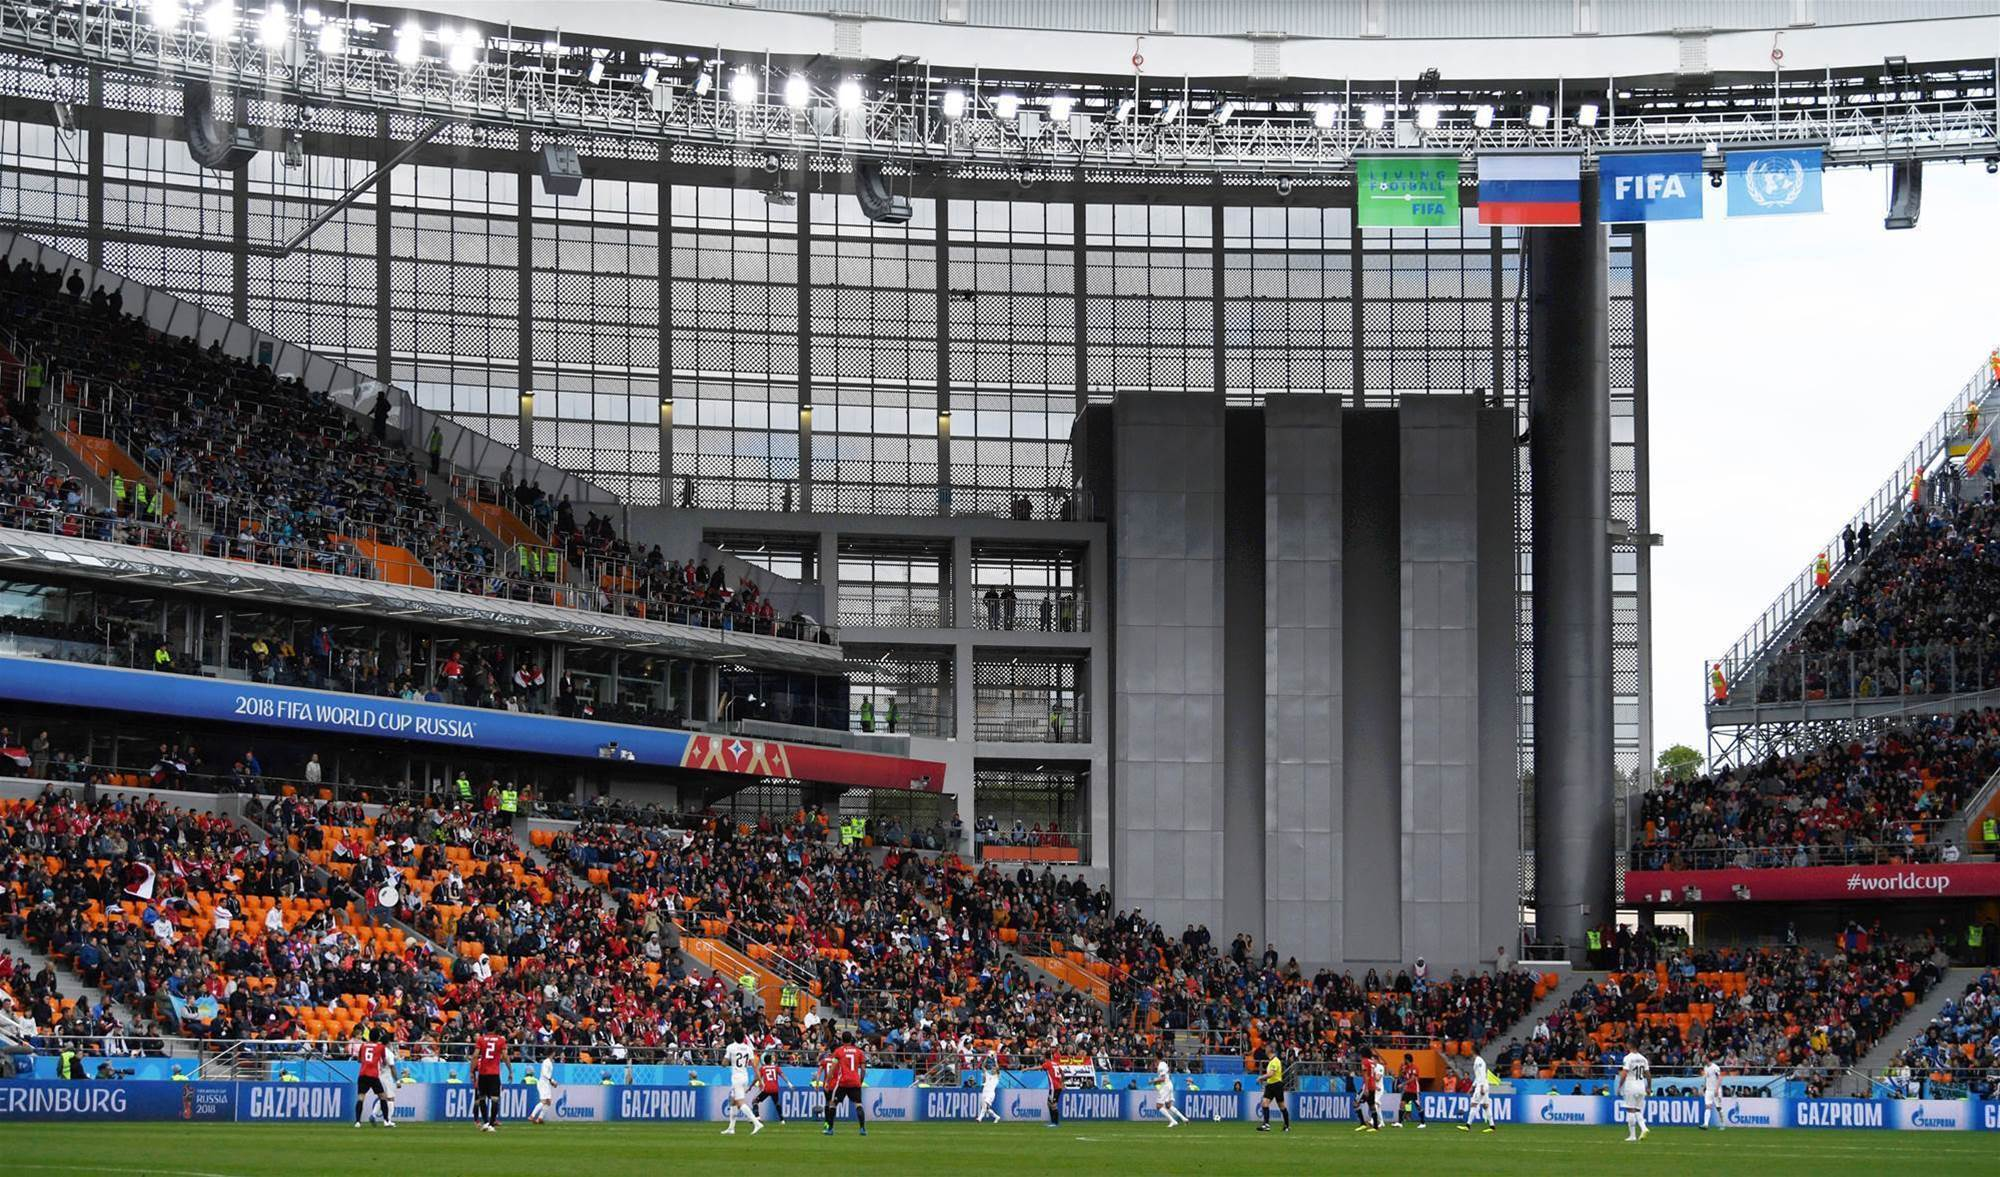 'No-shows' responsible for empty seats at World Cup - FIFA